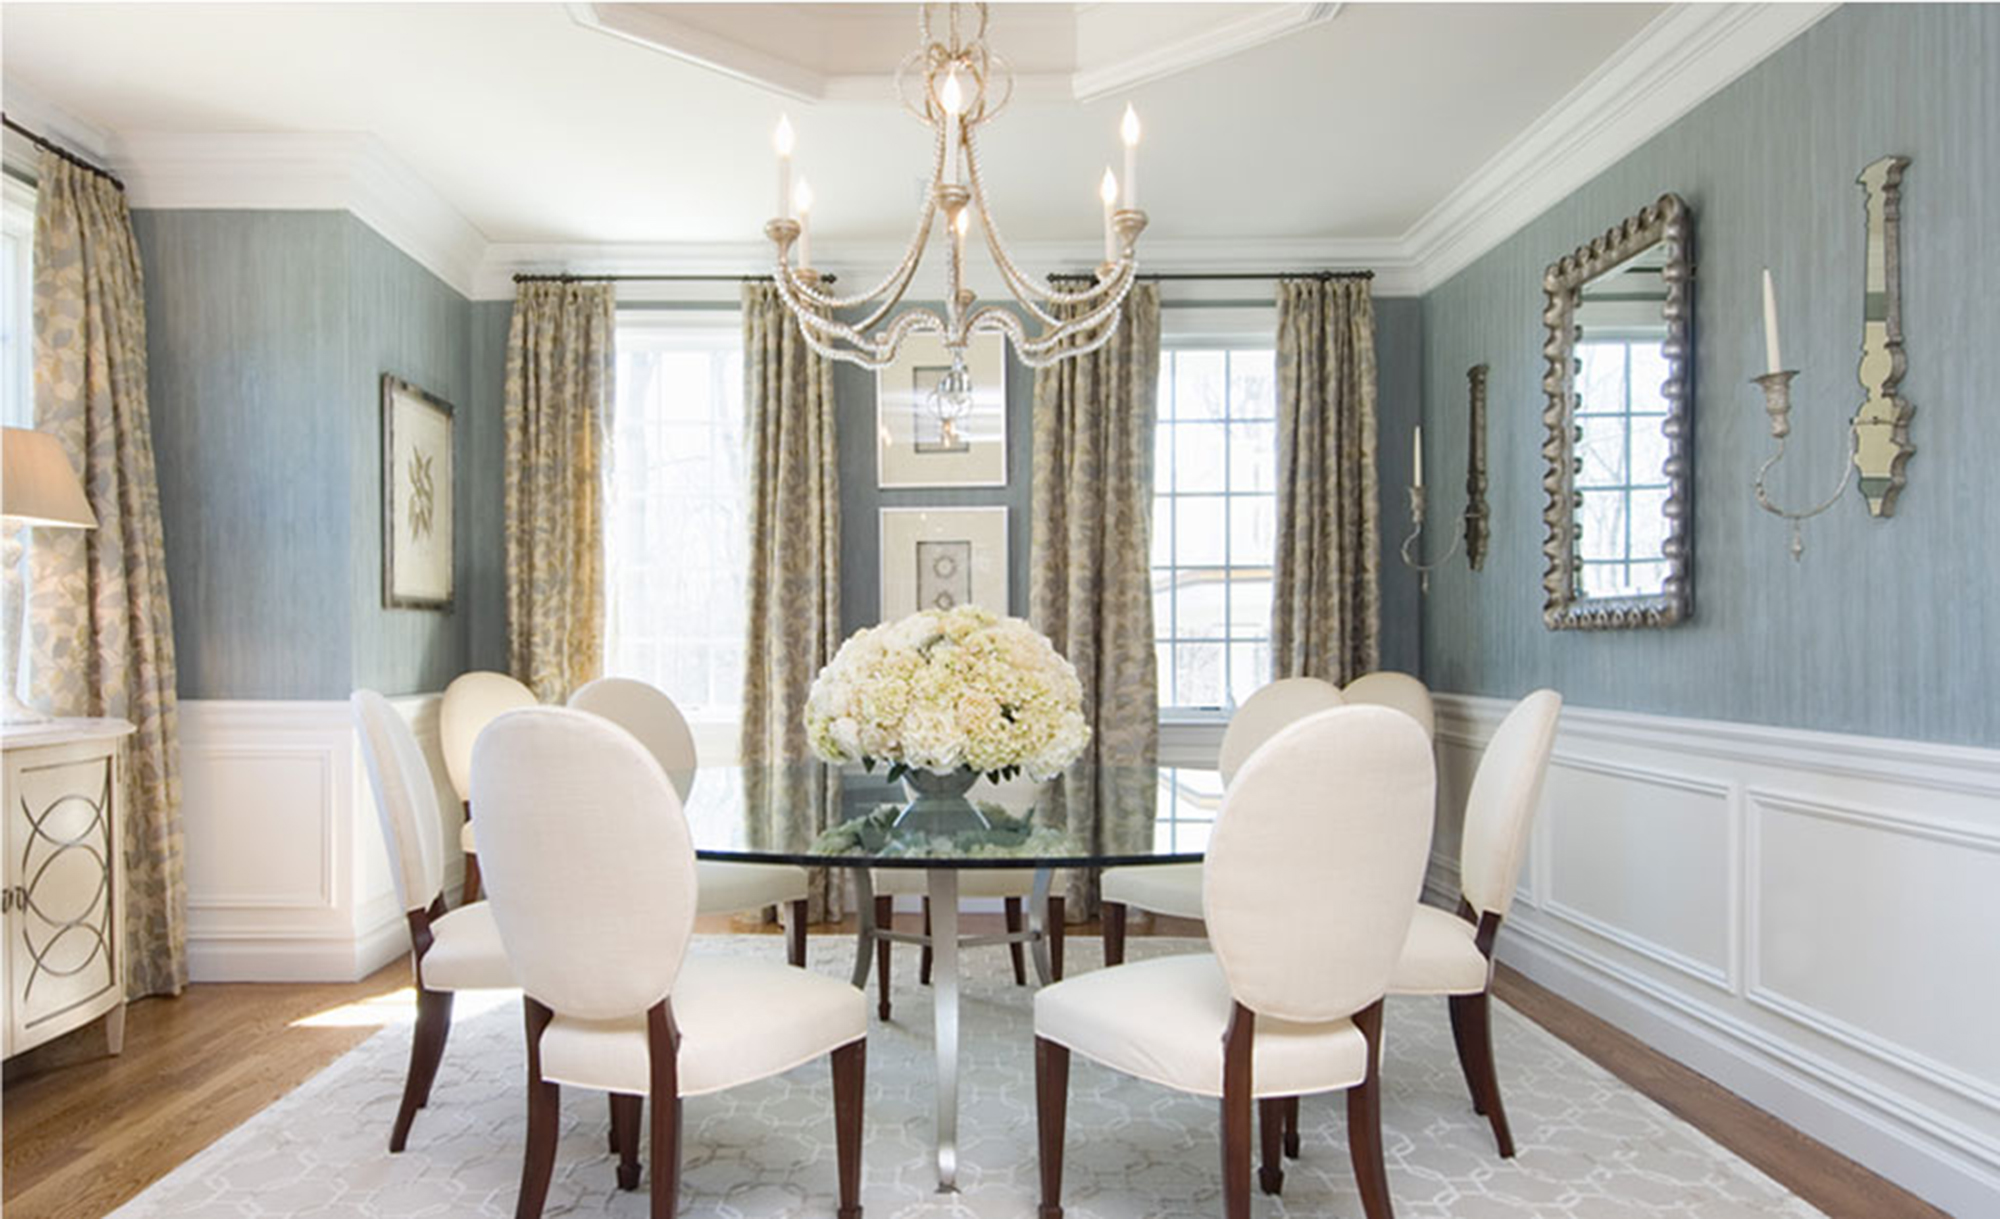 nice home dining rooms. How Many People Can Fit At My Dining Room Table? | Kathy Kuo Blog Home Nice Rooms